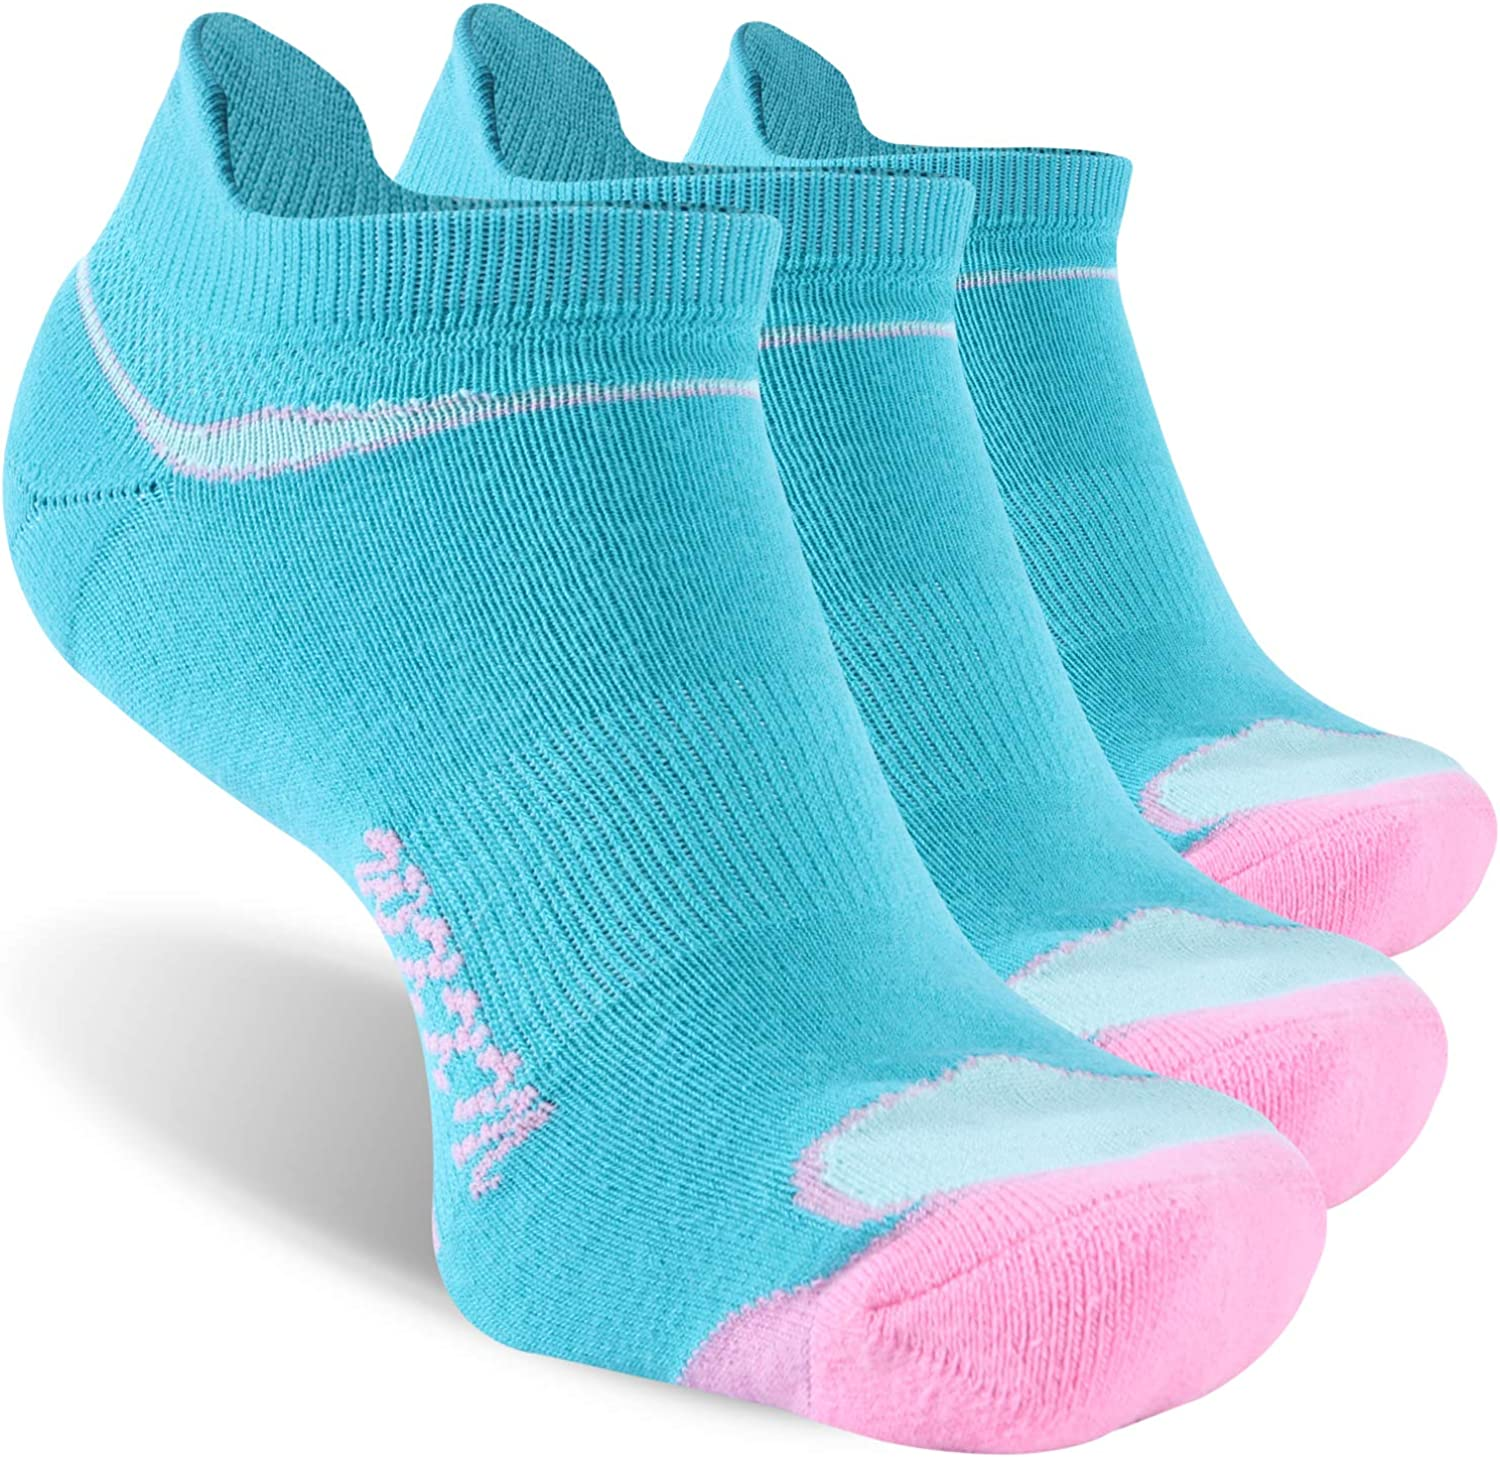 Ankle Running Socks WXXM Low Cut Comfort Cotton Cushioned Performance Walking Tab Socks with Arch Support 1//3//6 Pairs